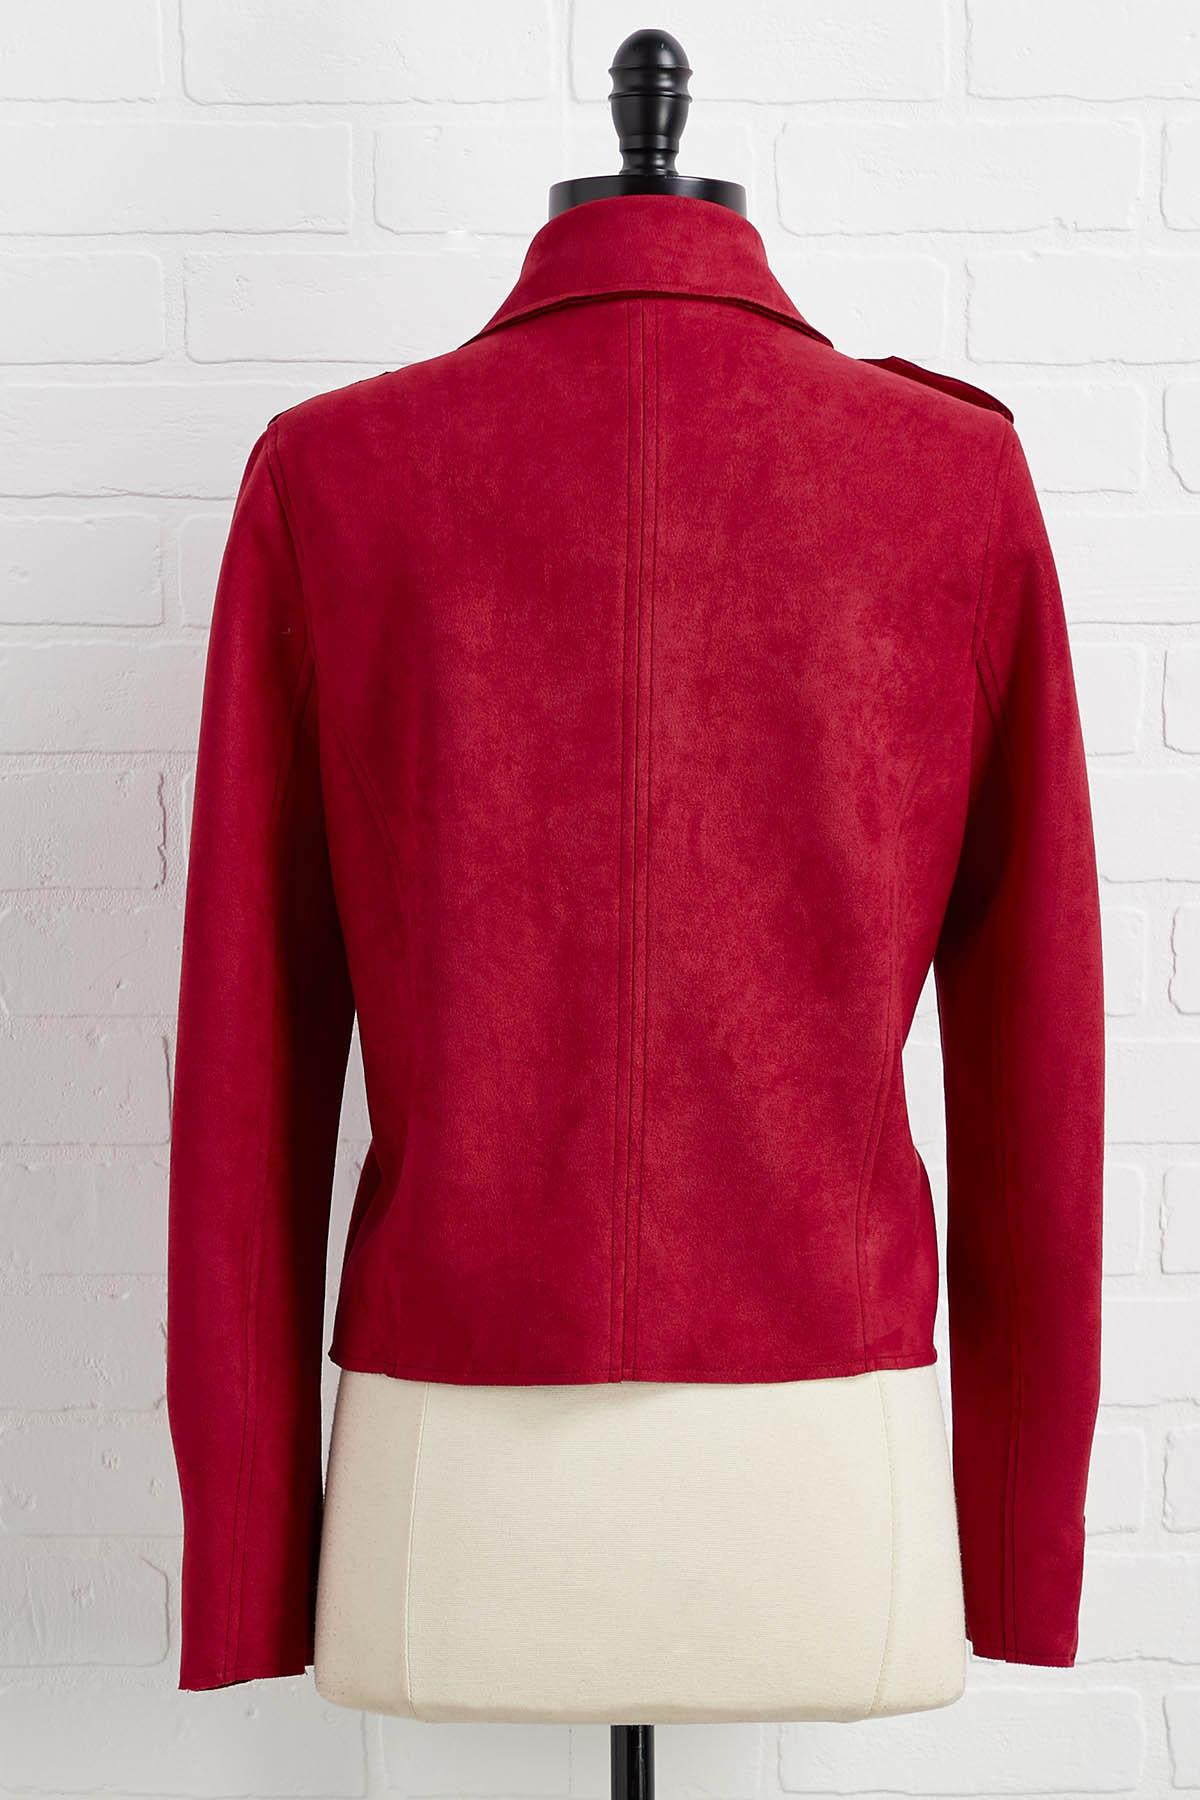 Little Red Riding Jacket